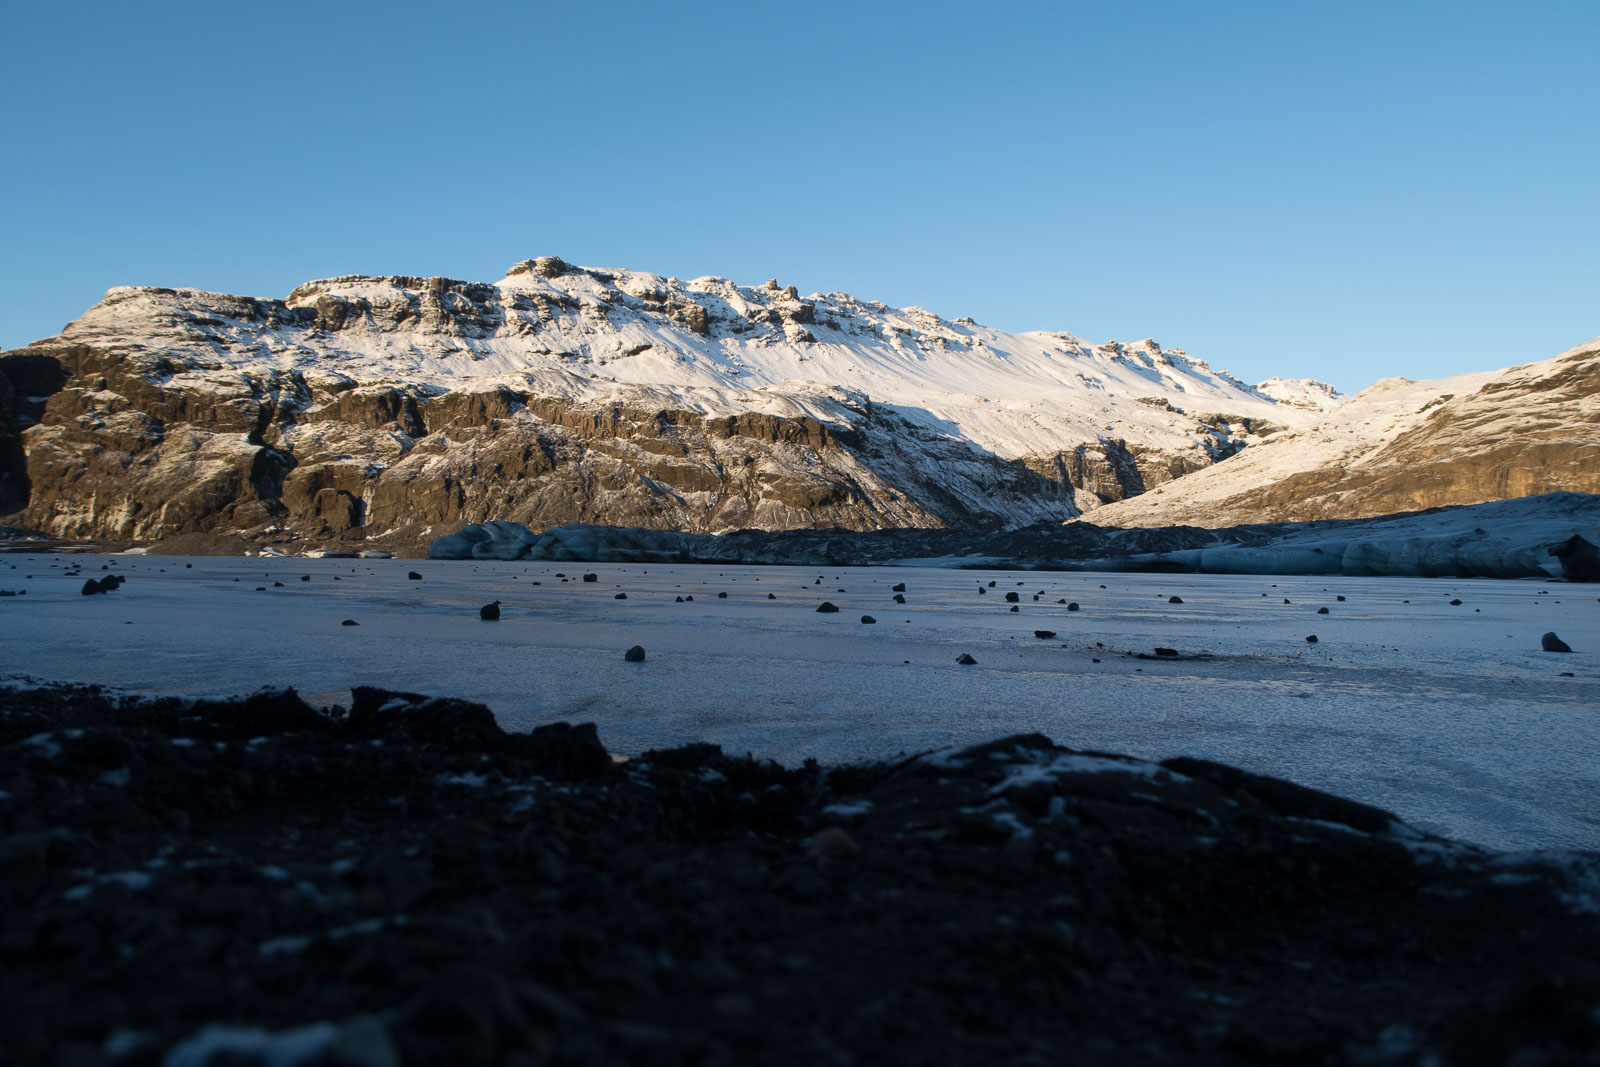 The frozen landscape and mountainous backdrop in Iceland.